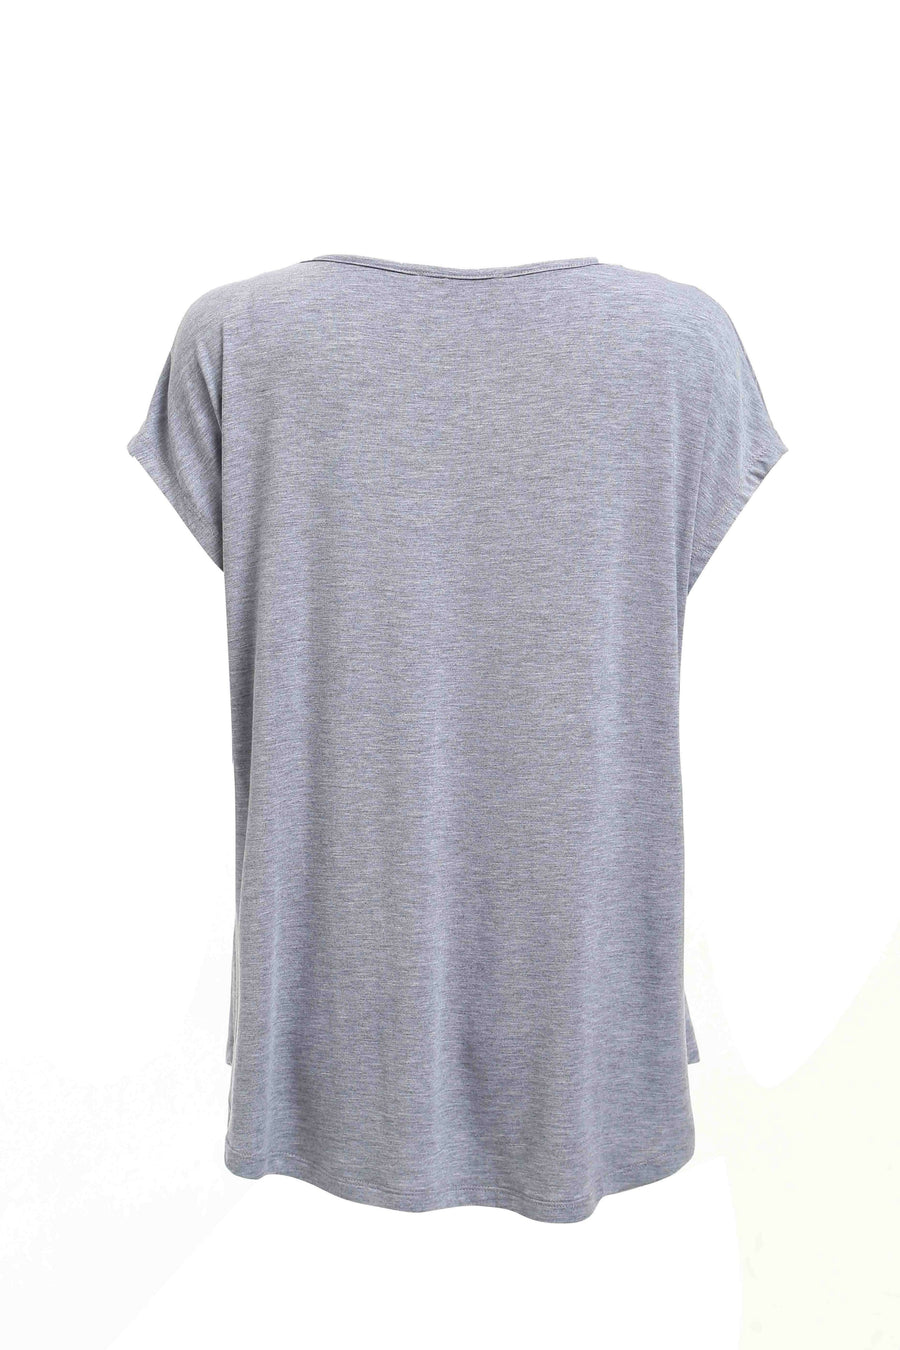 Grey Marle Star Placement Basic Tee